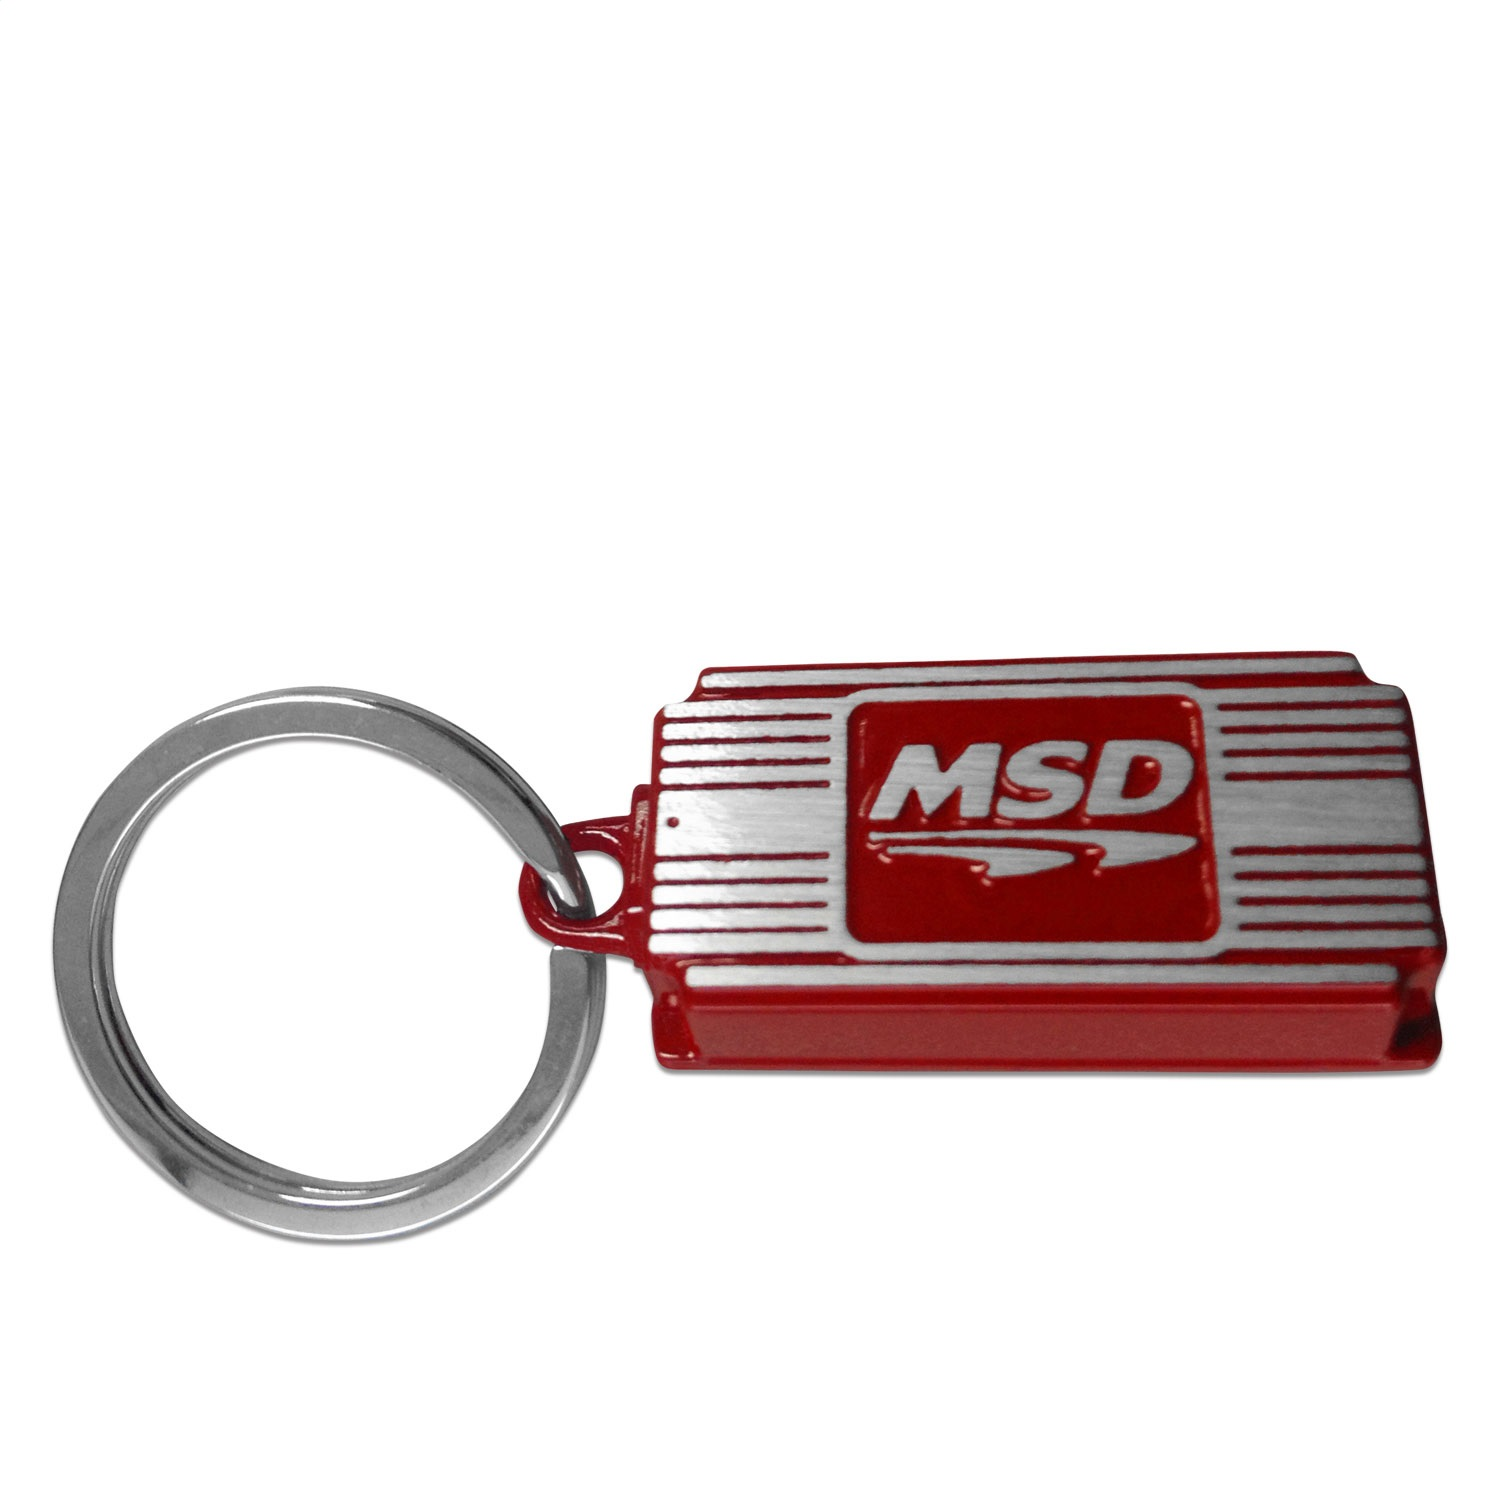 MSD Ignition 9390 Key Chain